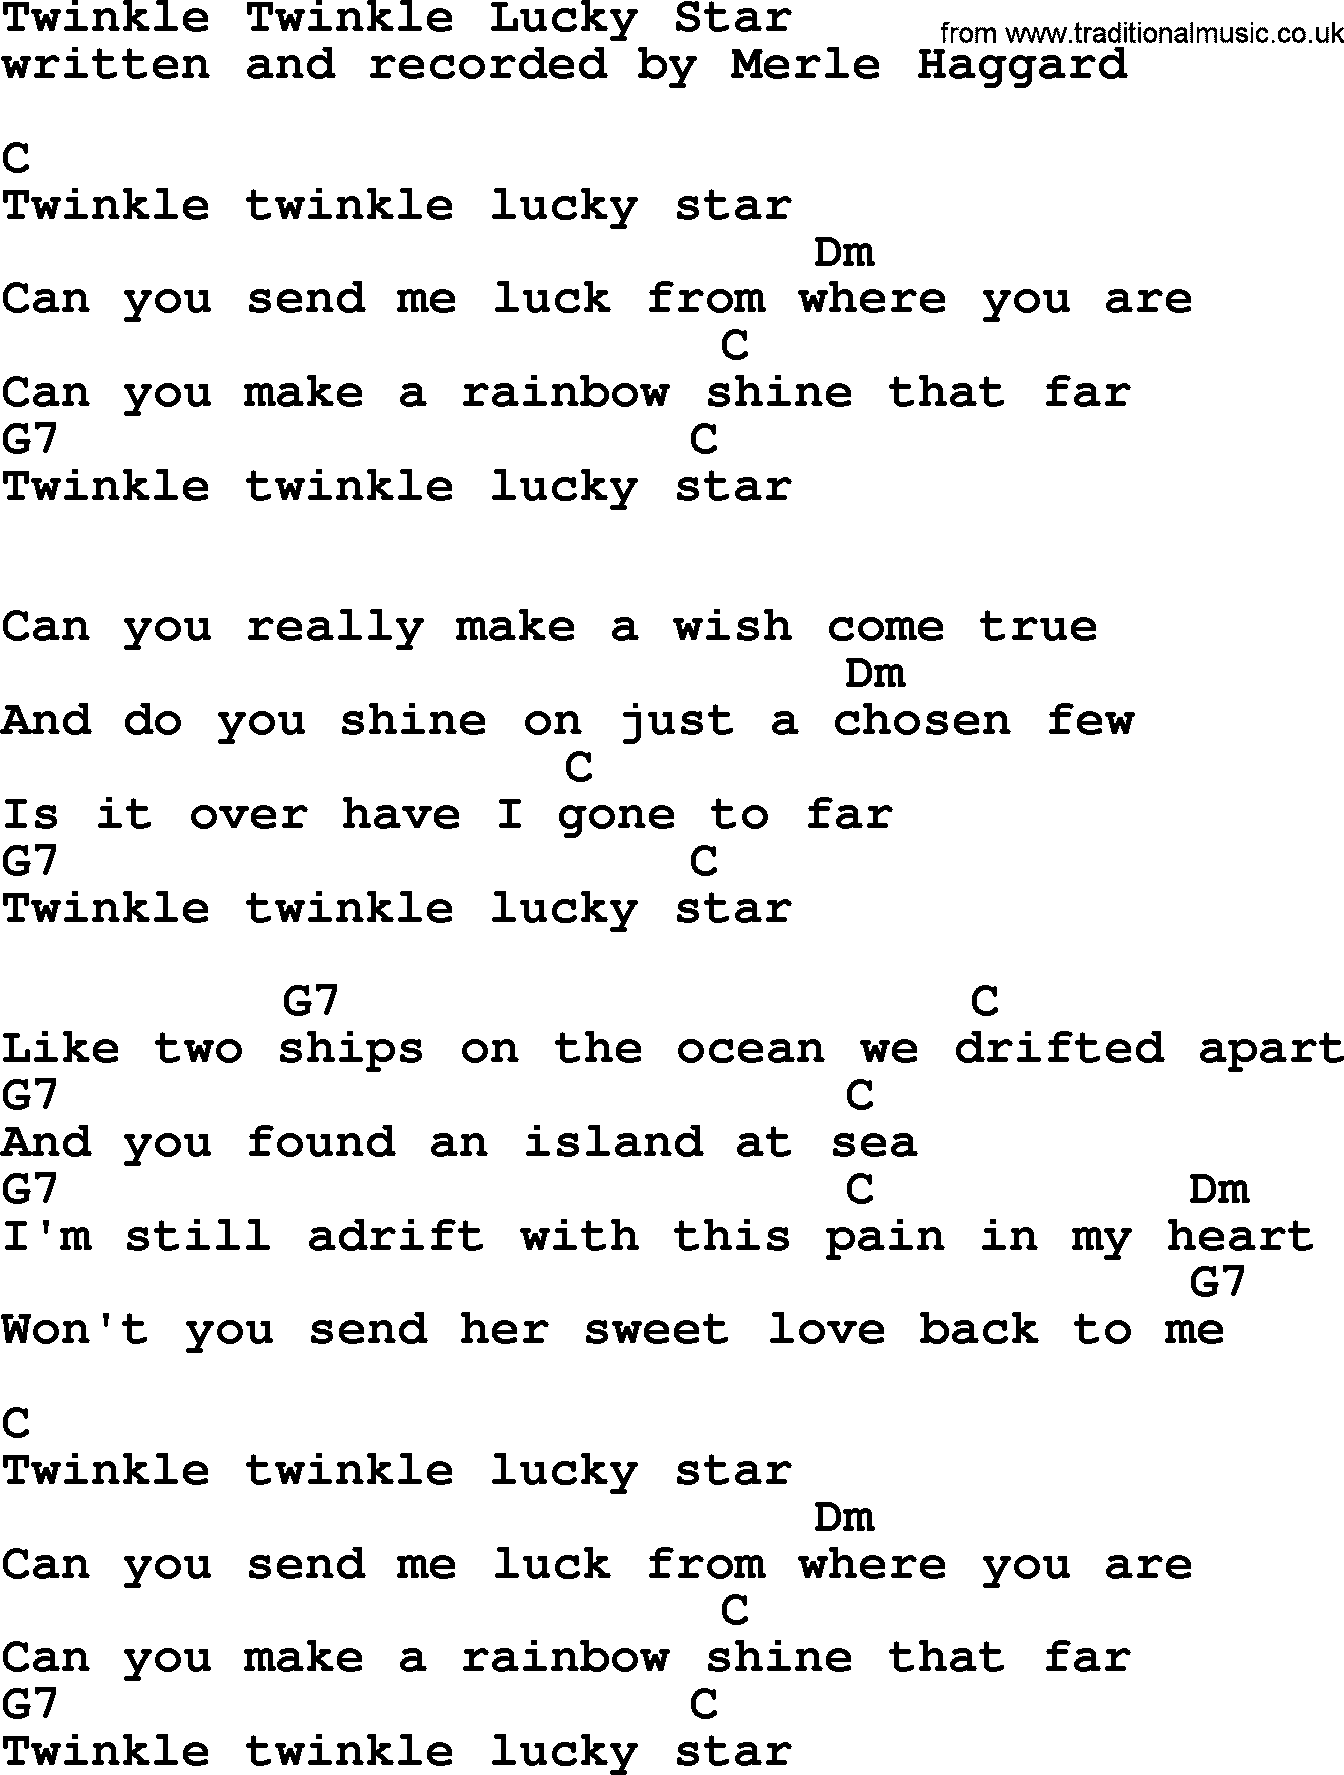 Twinkle Twinkle Lucky Star By Merle Haggard Lyrics And Chords